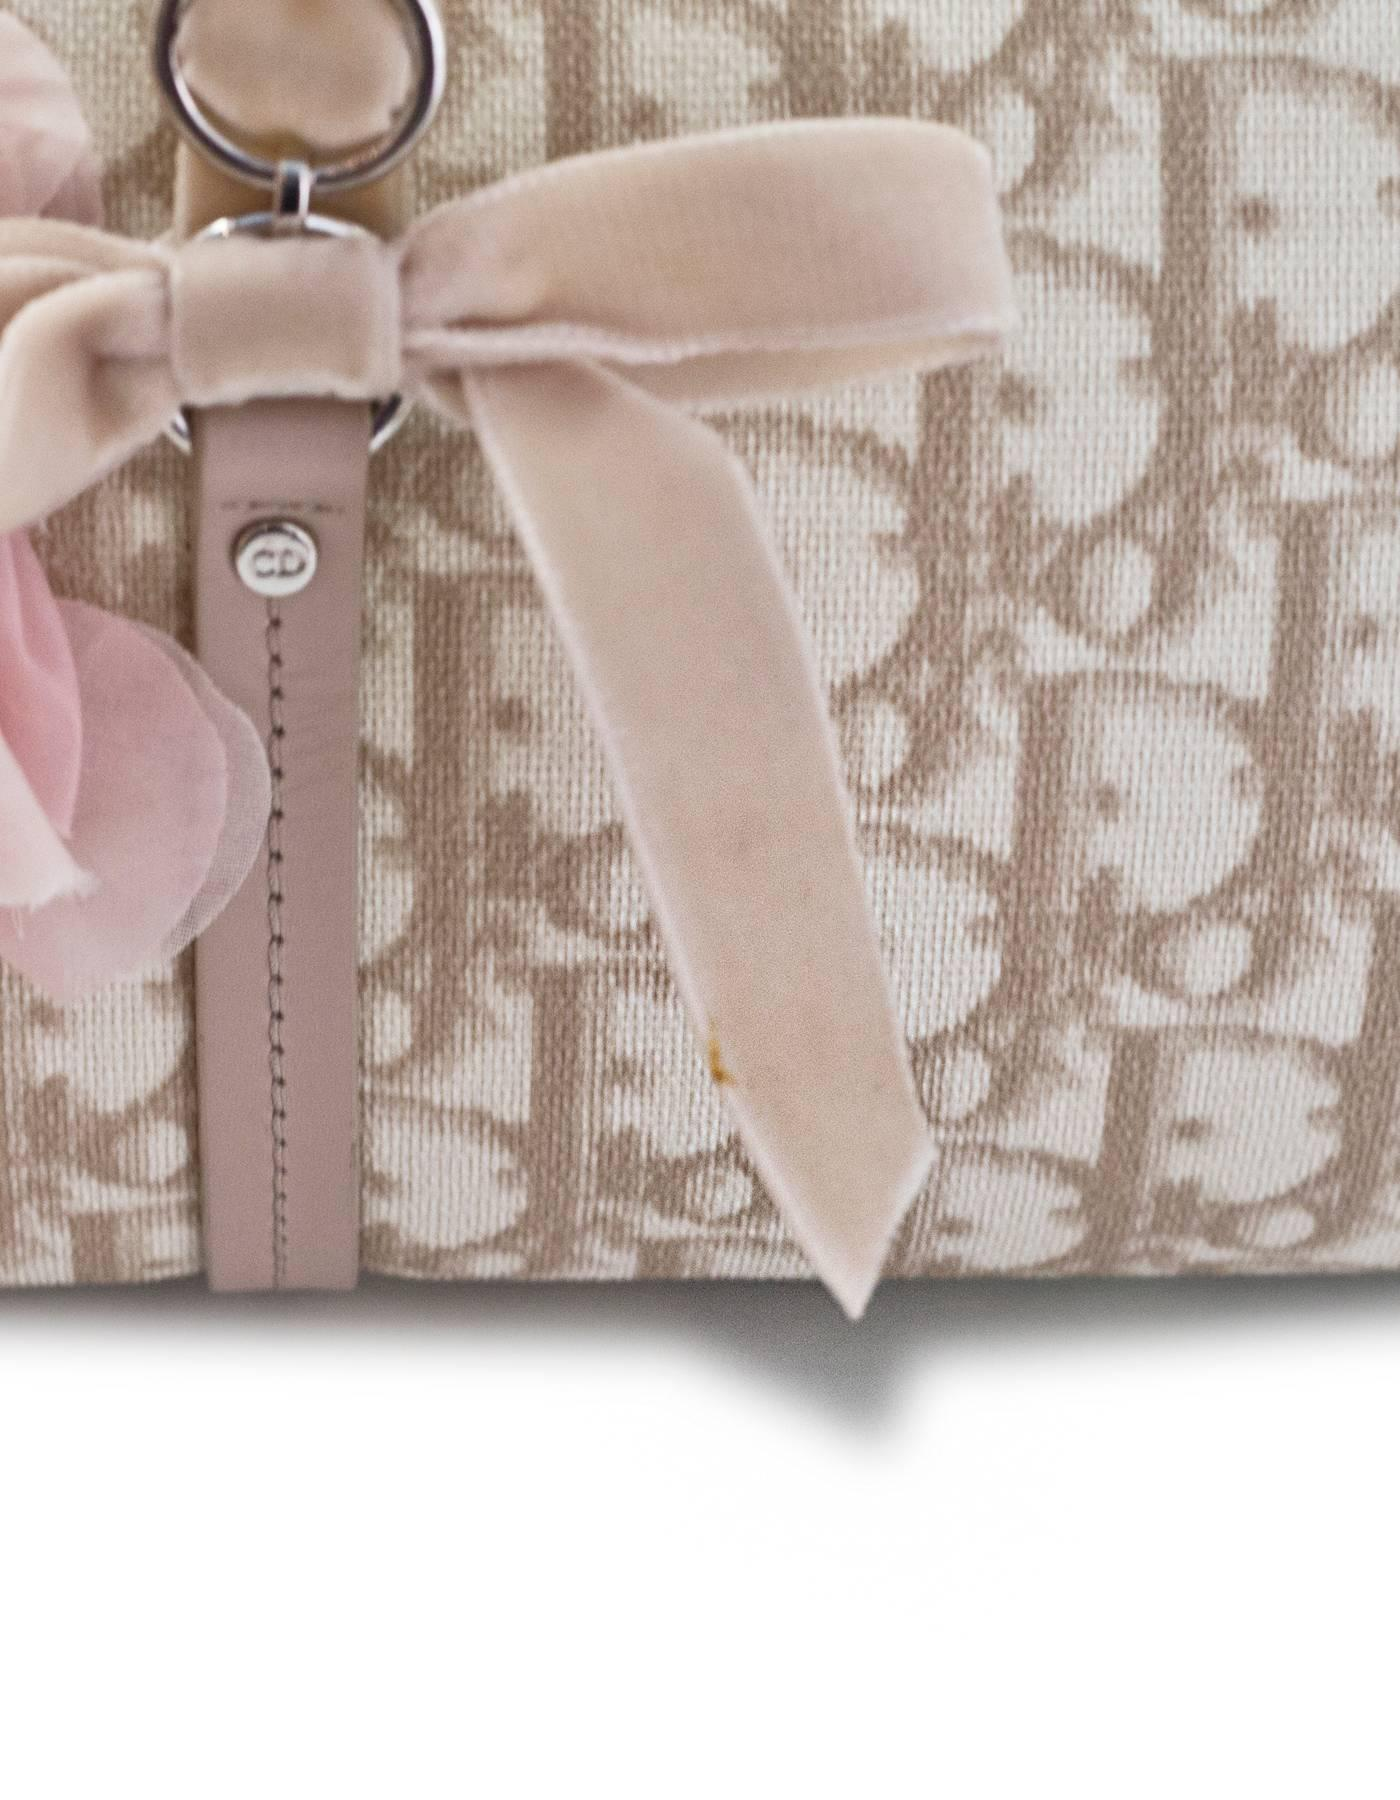 Dior Beige Monogram Trotter Romantique Floral Bow Medium Handle Bag cGSi93O5S8